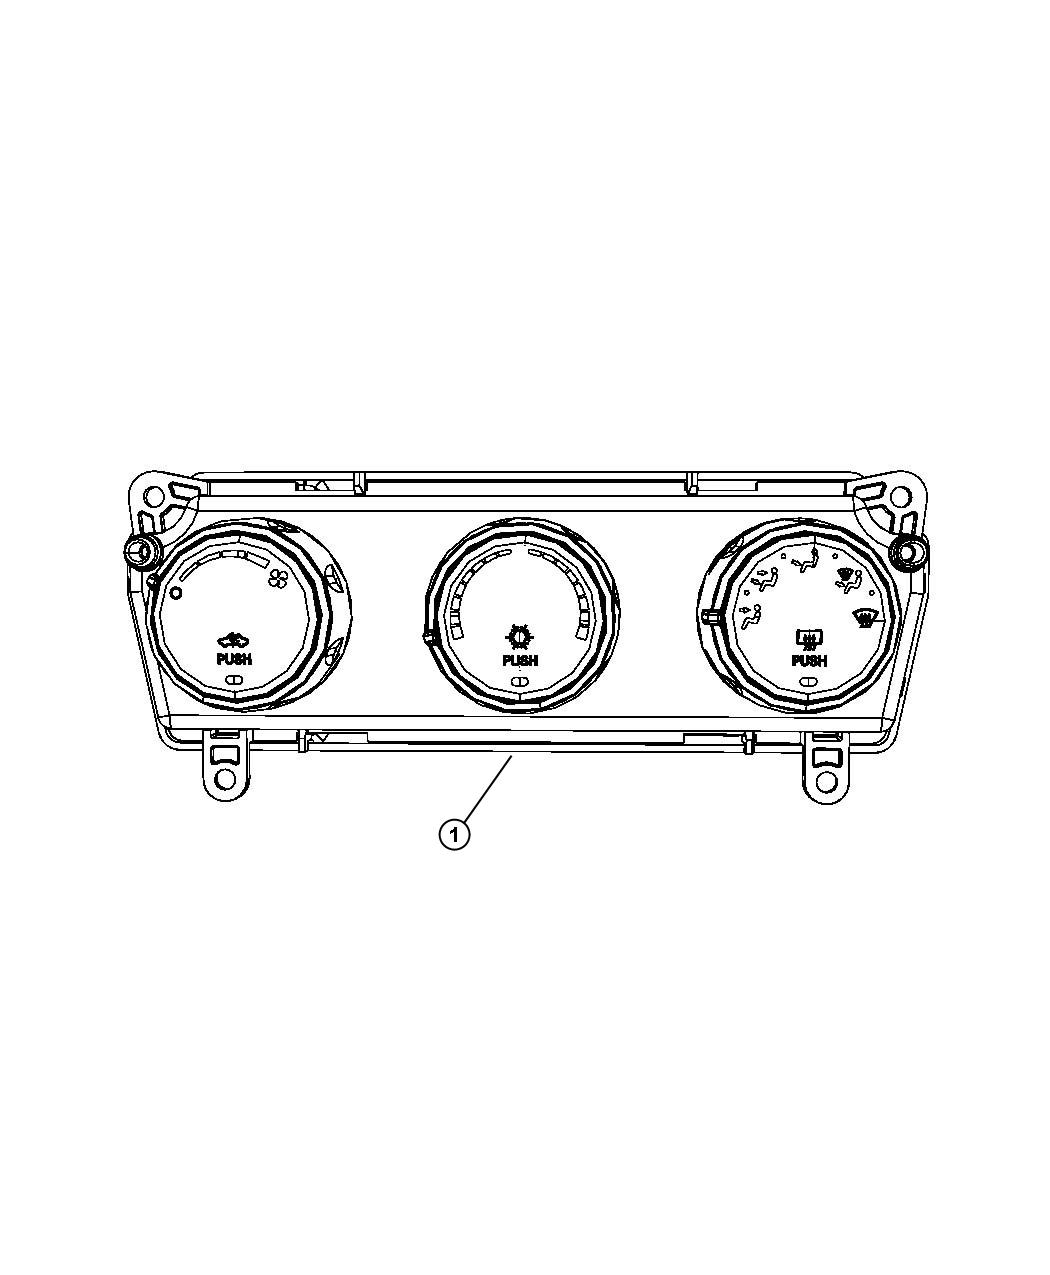 Jeep Liberty Control Used For A C And Heater Export